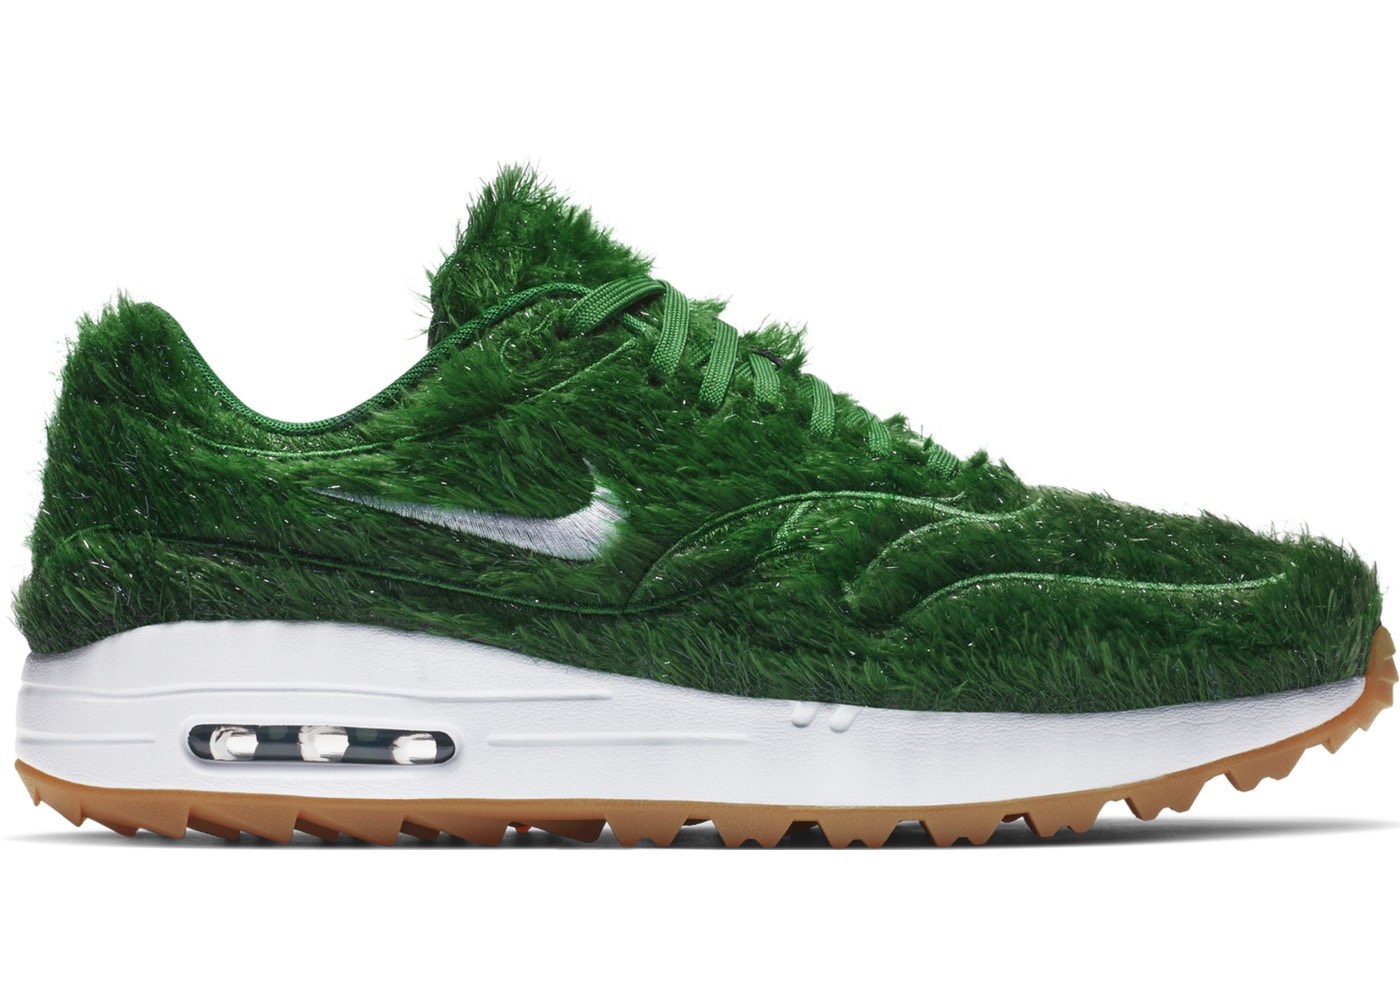 reputable site ffba5 0a48f Air Max 1 Golf Grass